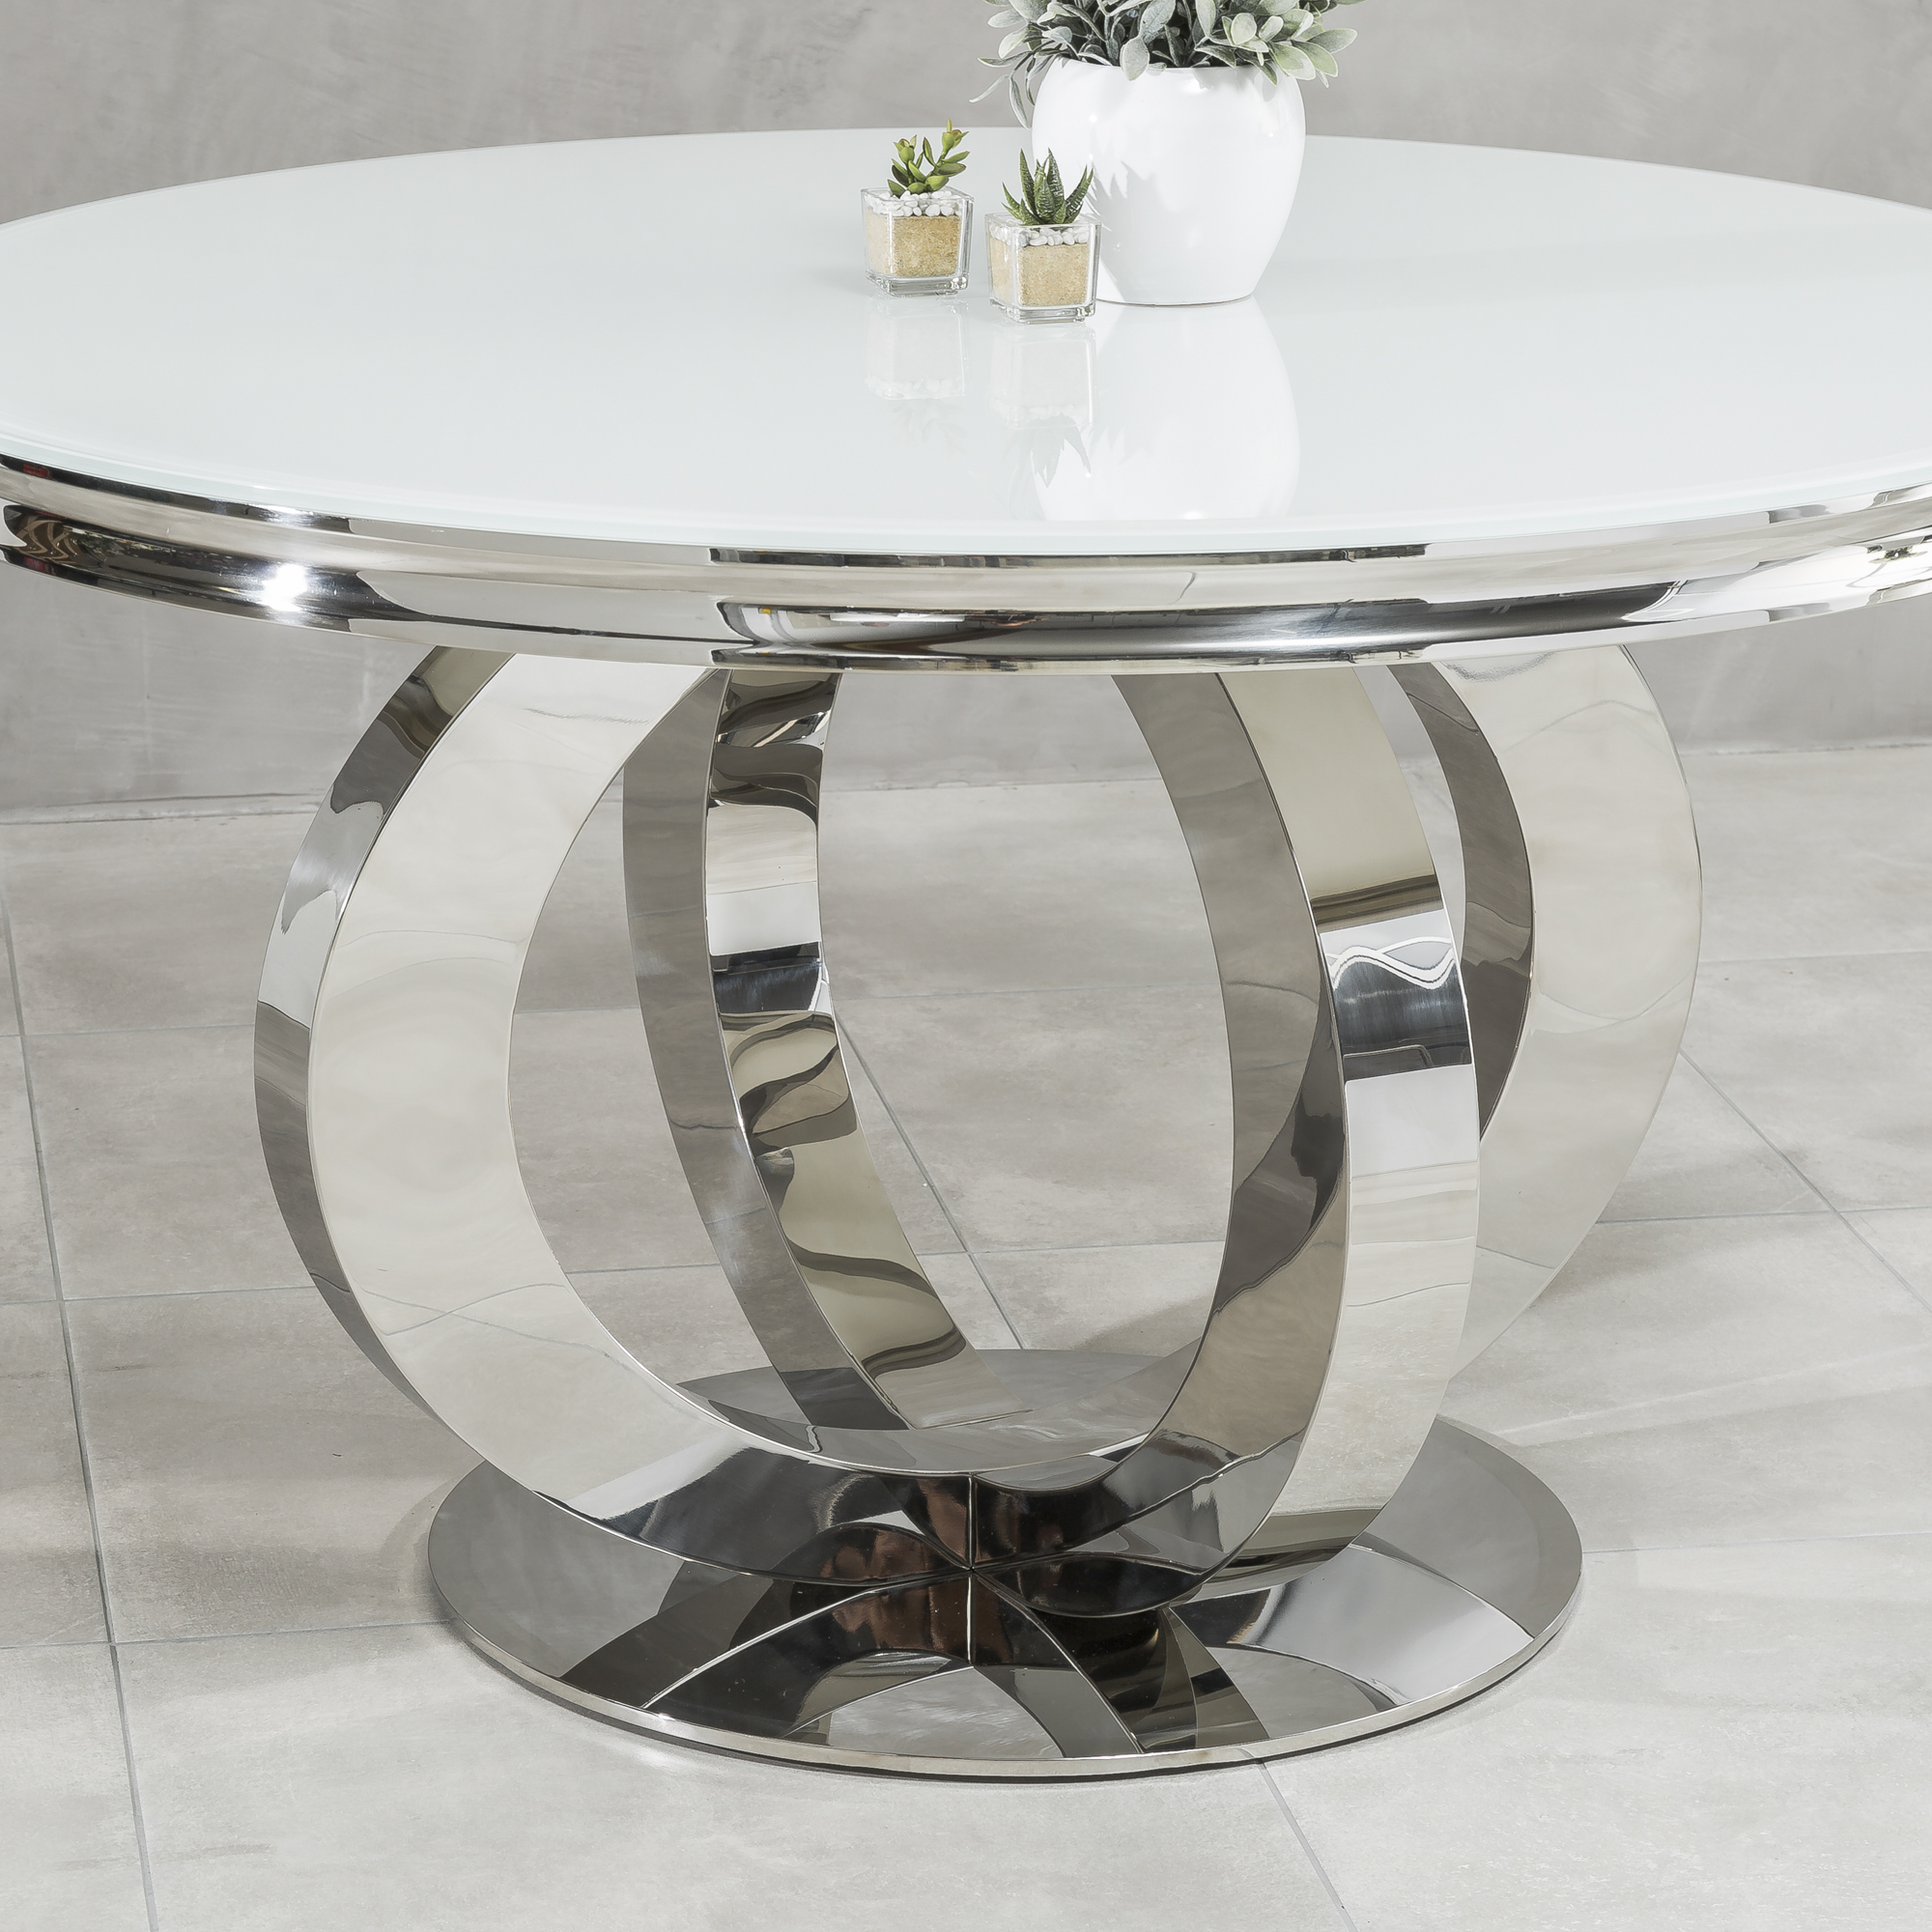 1.3M Polished Circular Stainless Steel Dining Table with White Glass